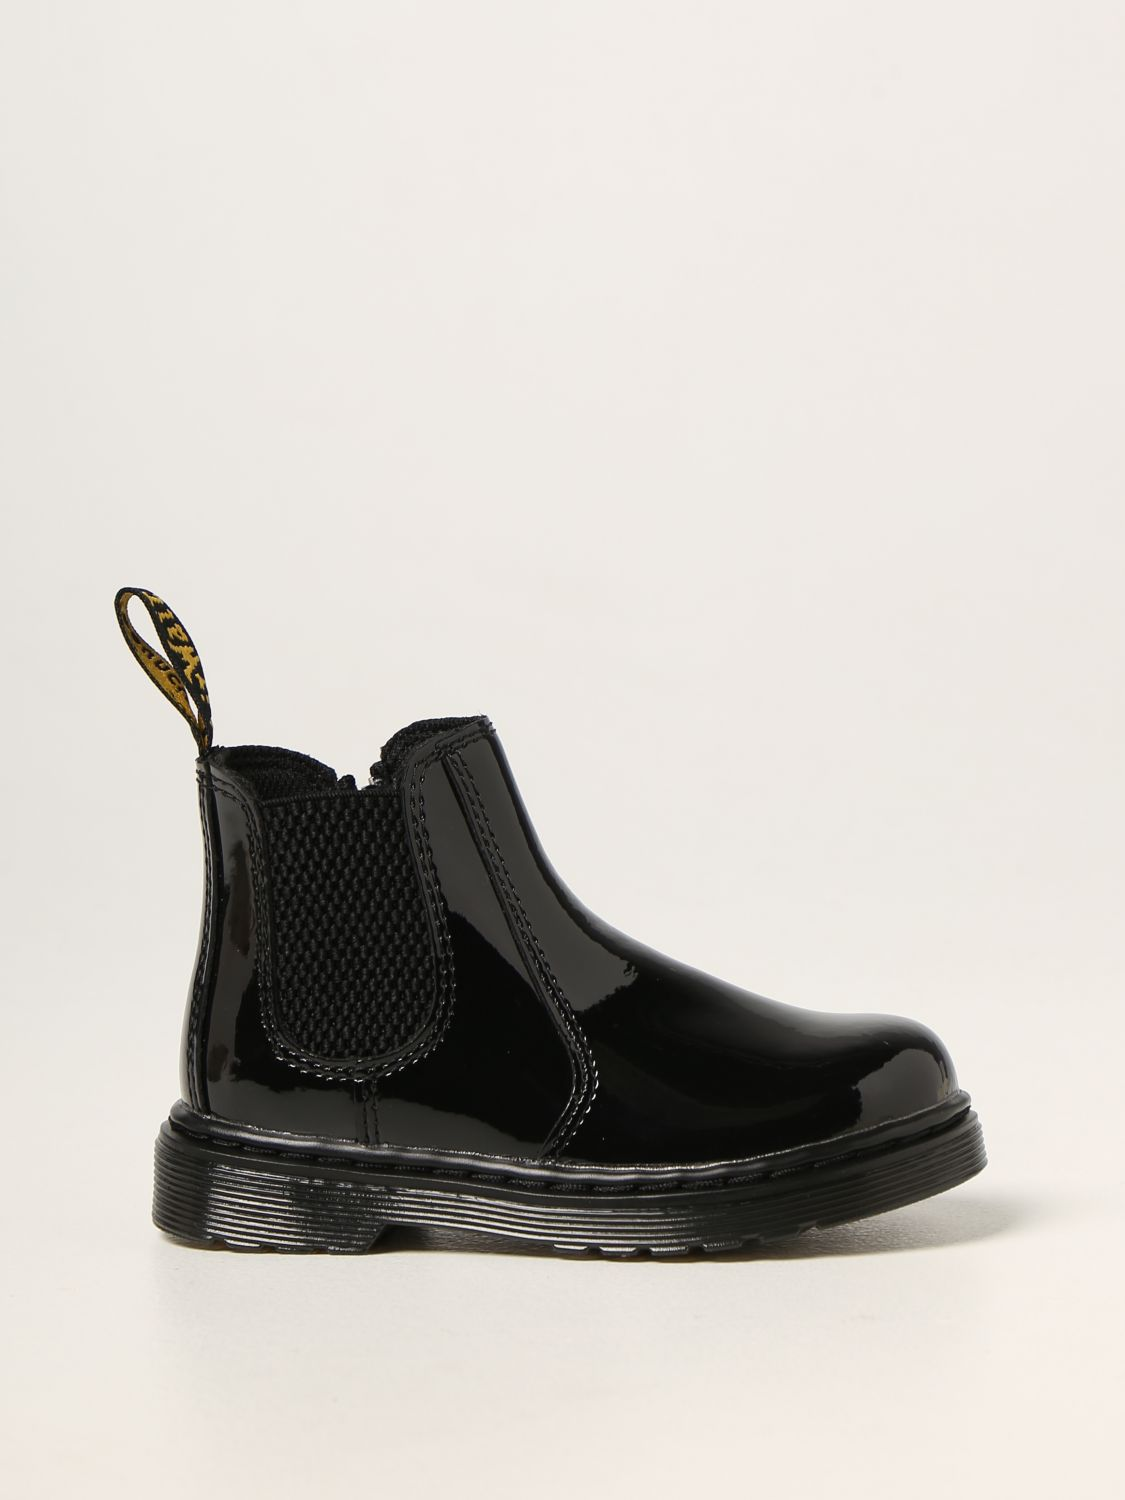 Shoes Dr. Martens: Dr. Martens Chelsea boots in patent leather black 1